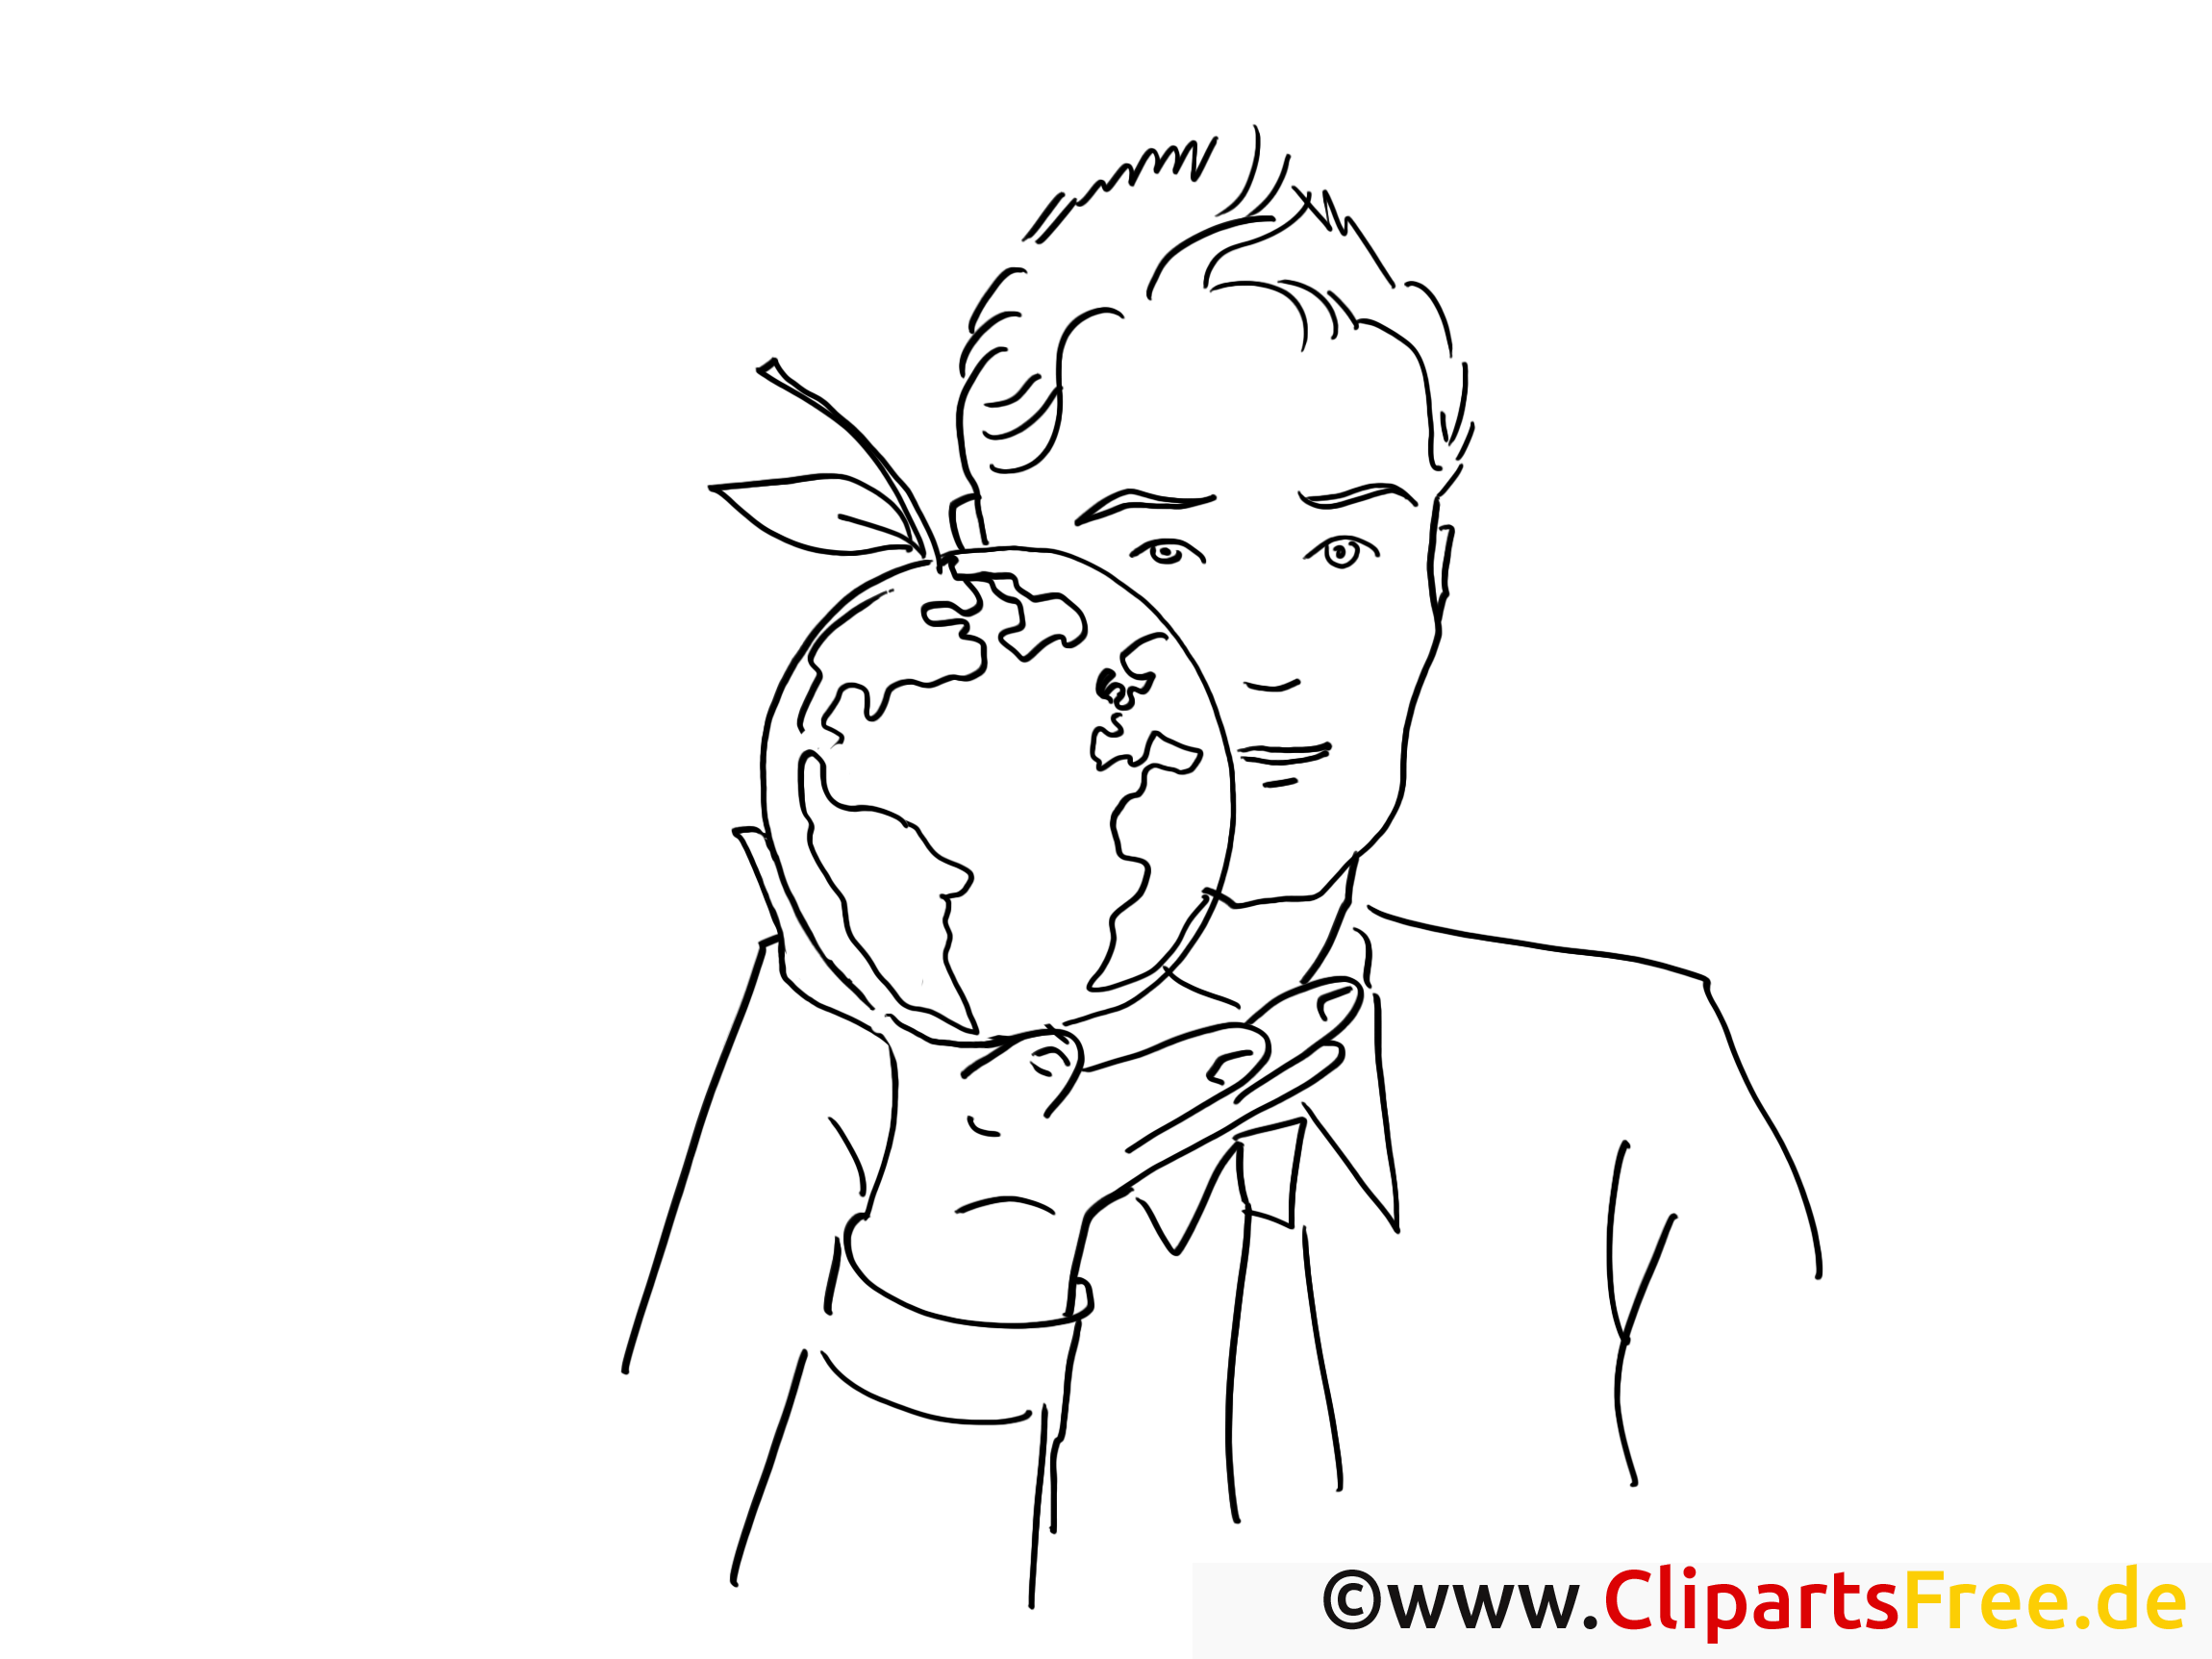 globusapple coloring page office work